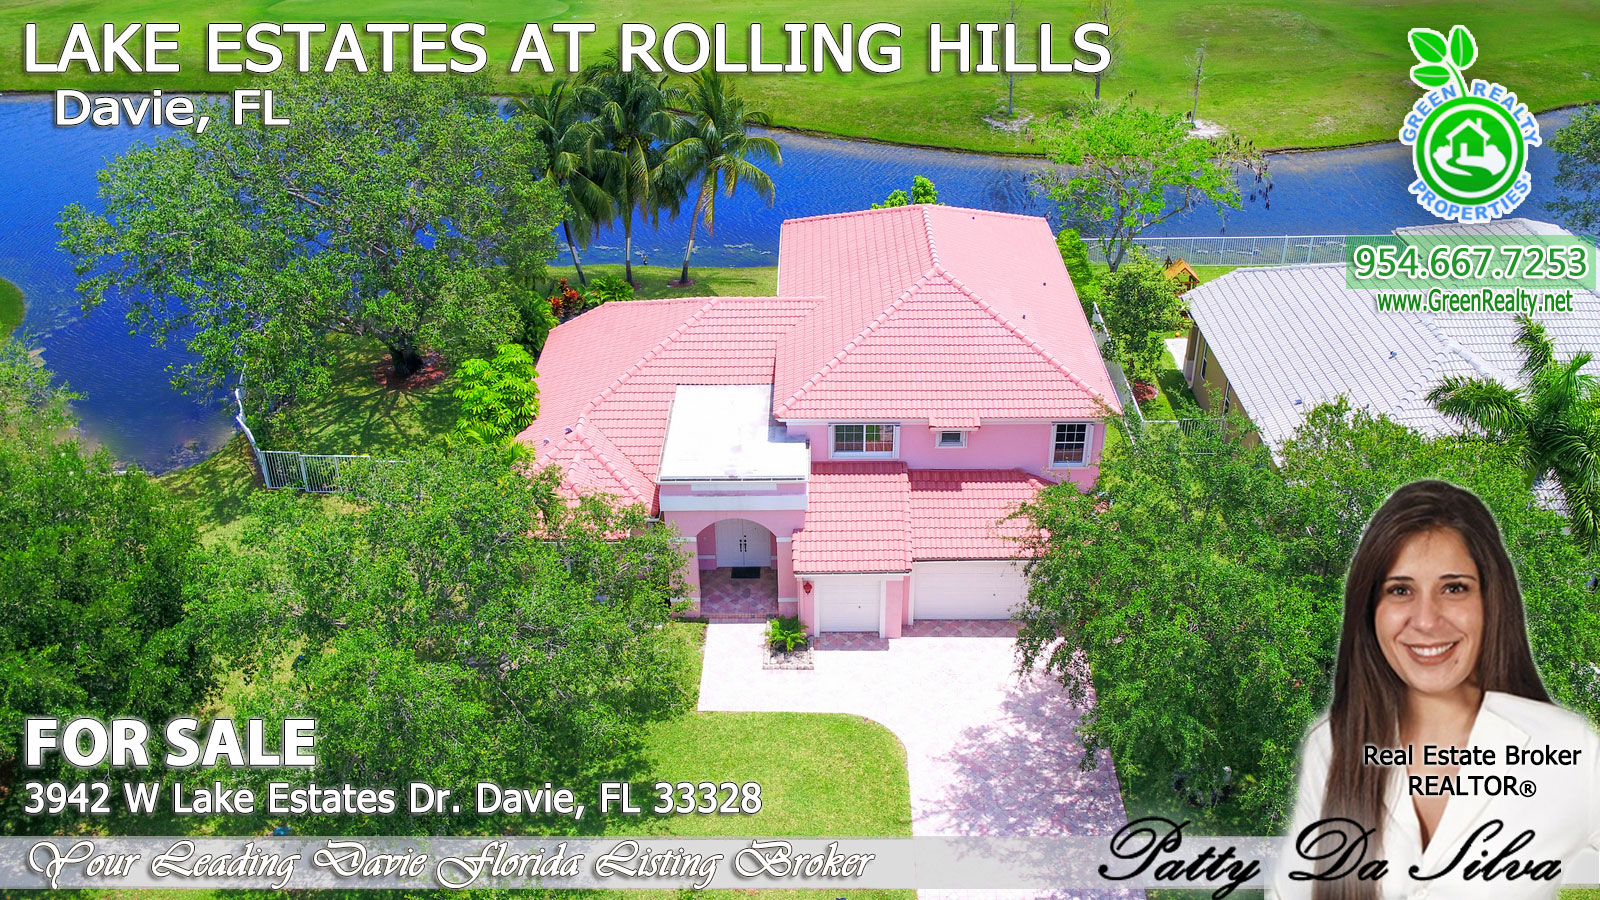 Your-leading-davie-florida-listing-broker-Patty-da-silva-9546677253